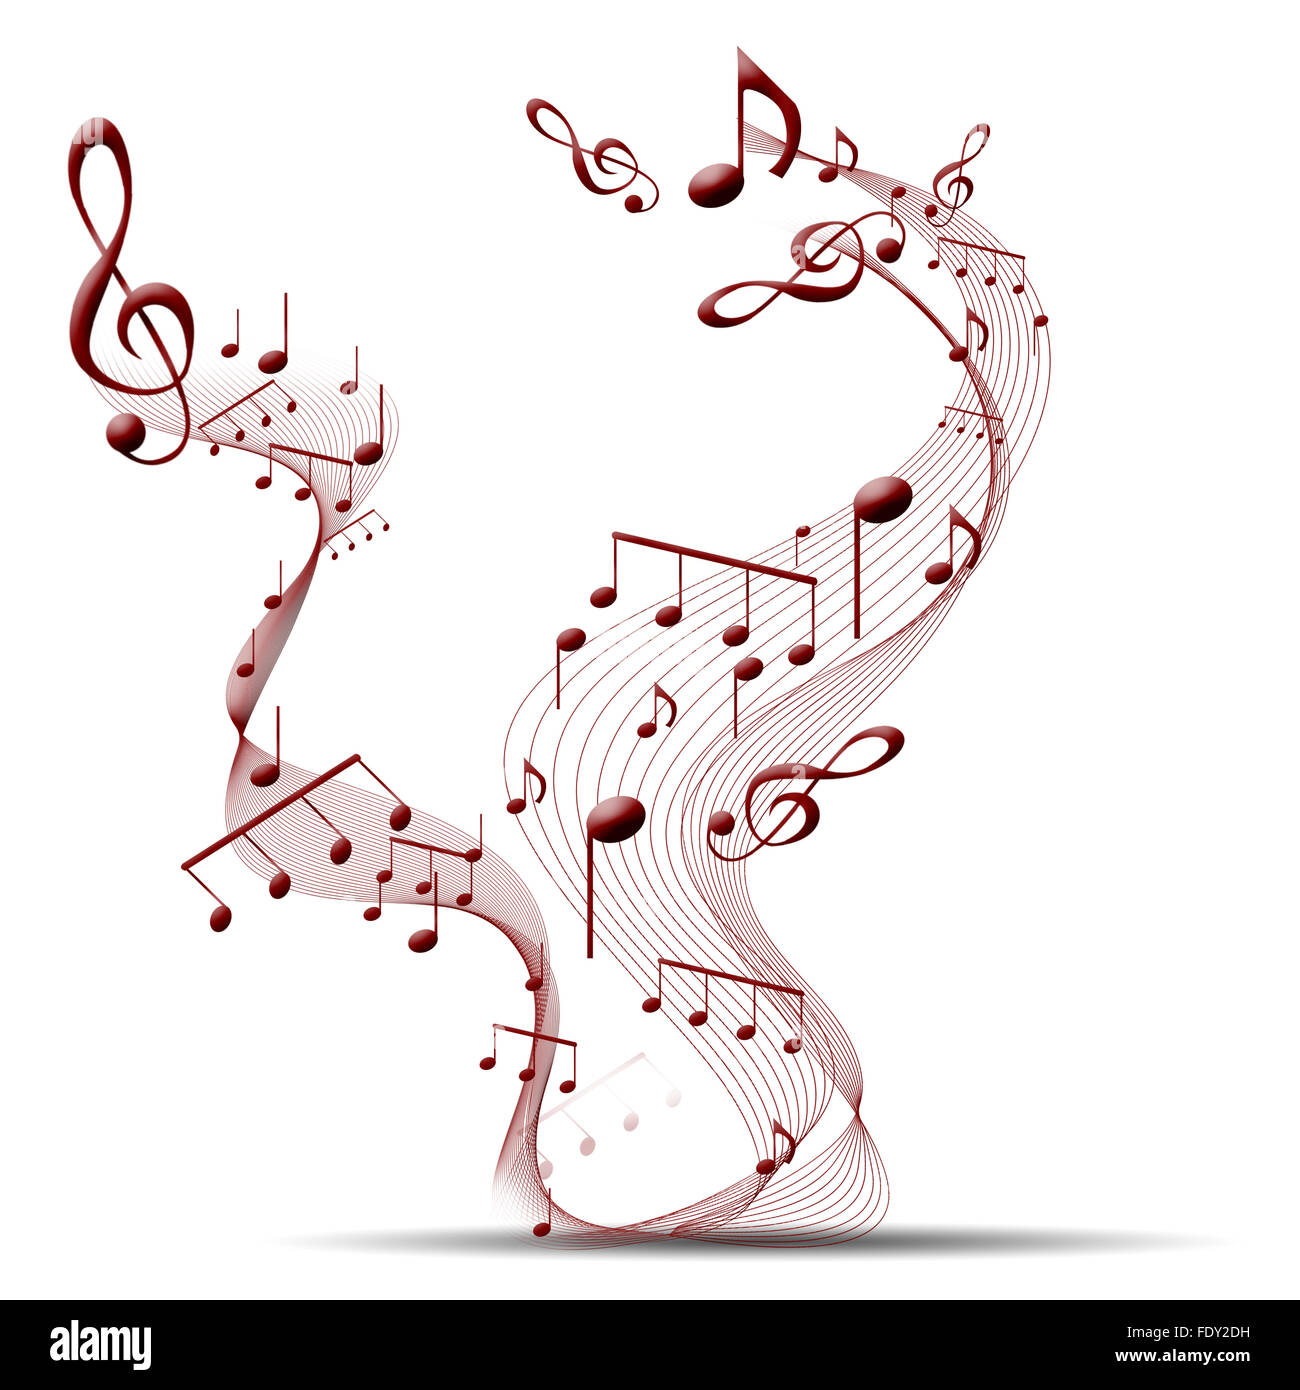 Composition made of note sing against white background as symbol of composition made of note sing against white background as symbol of music buycottarizona Image collections